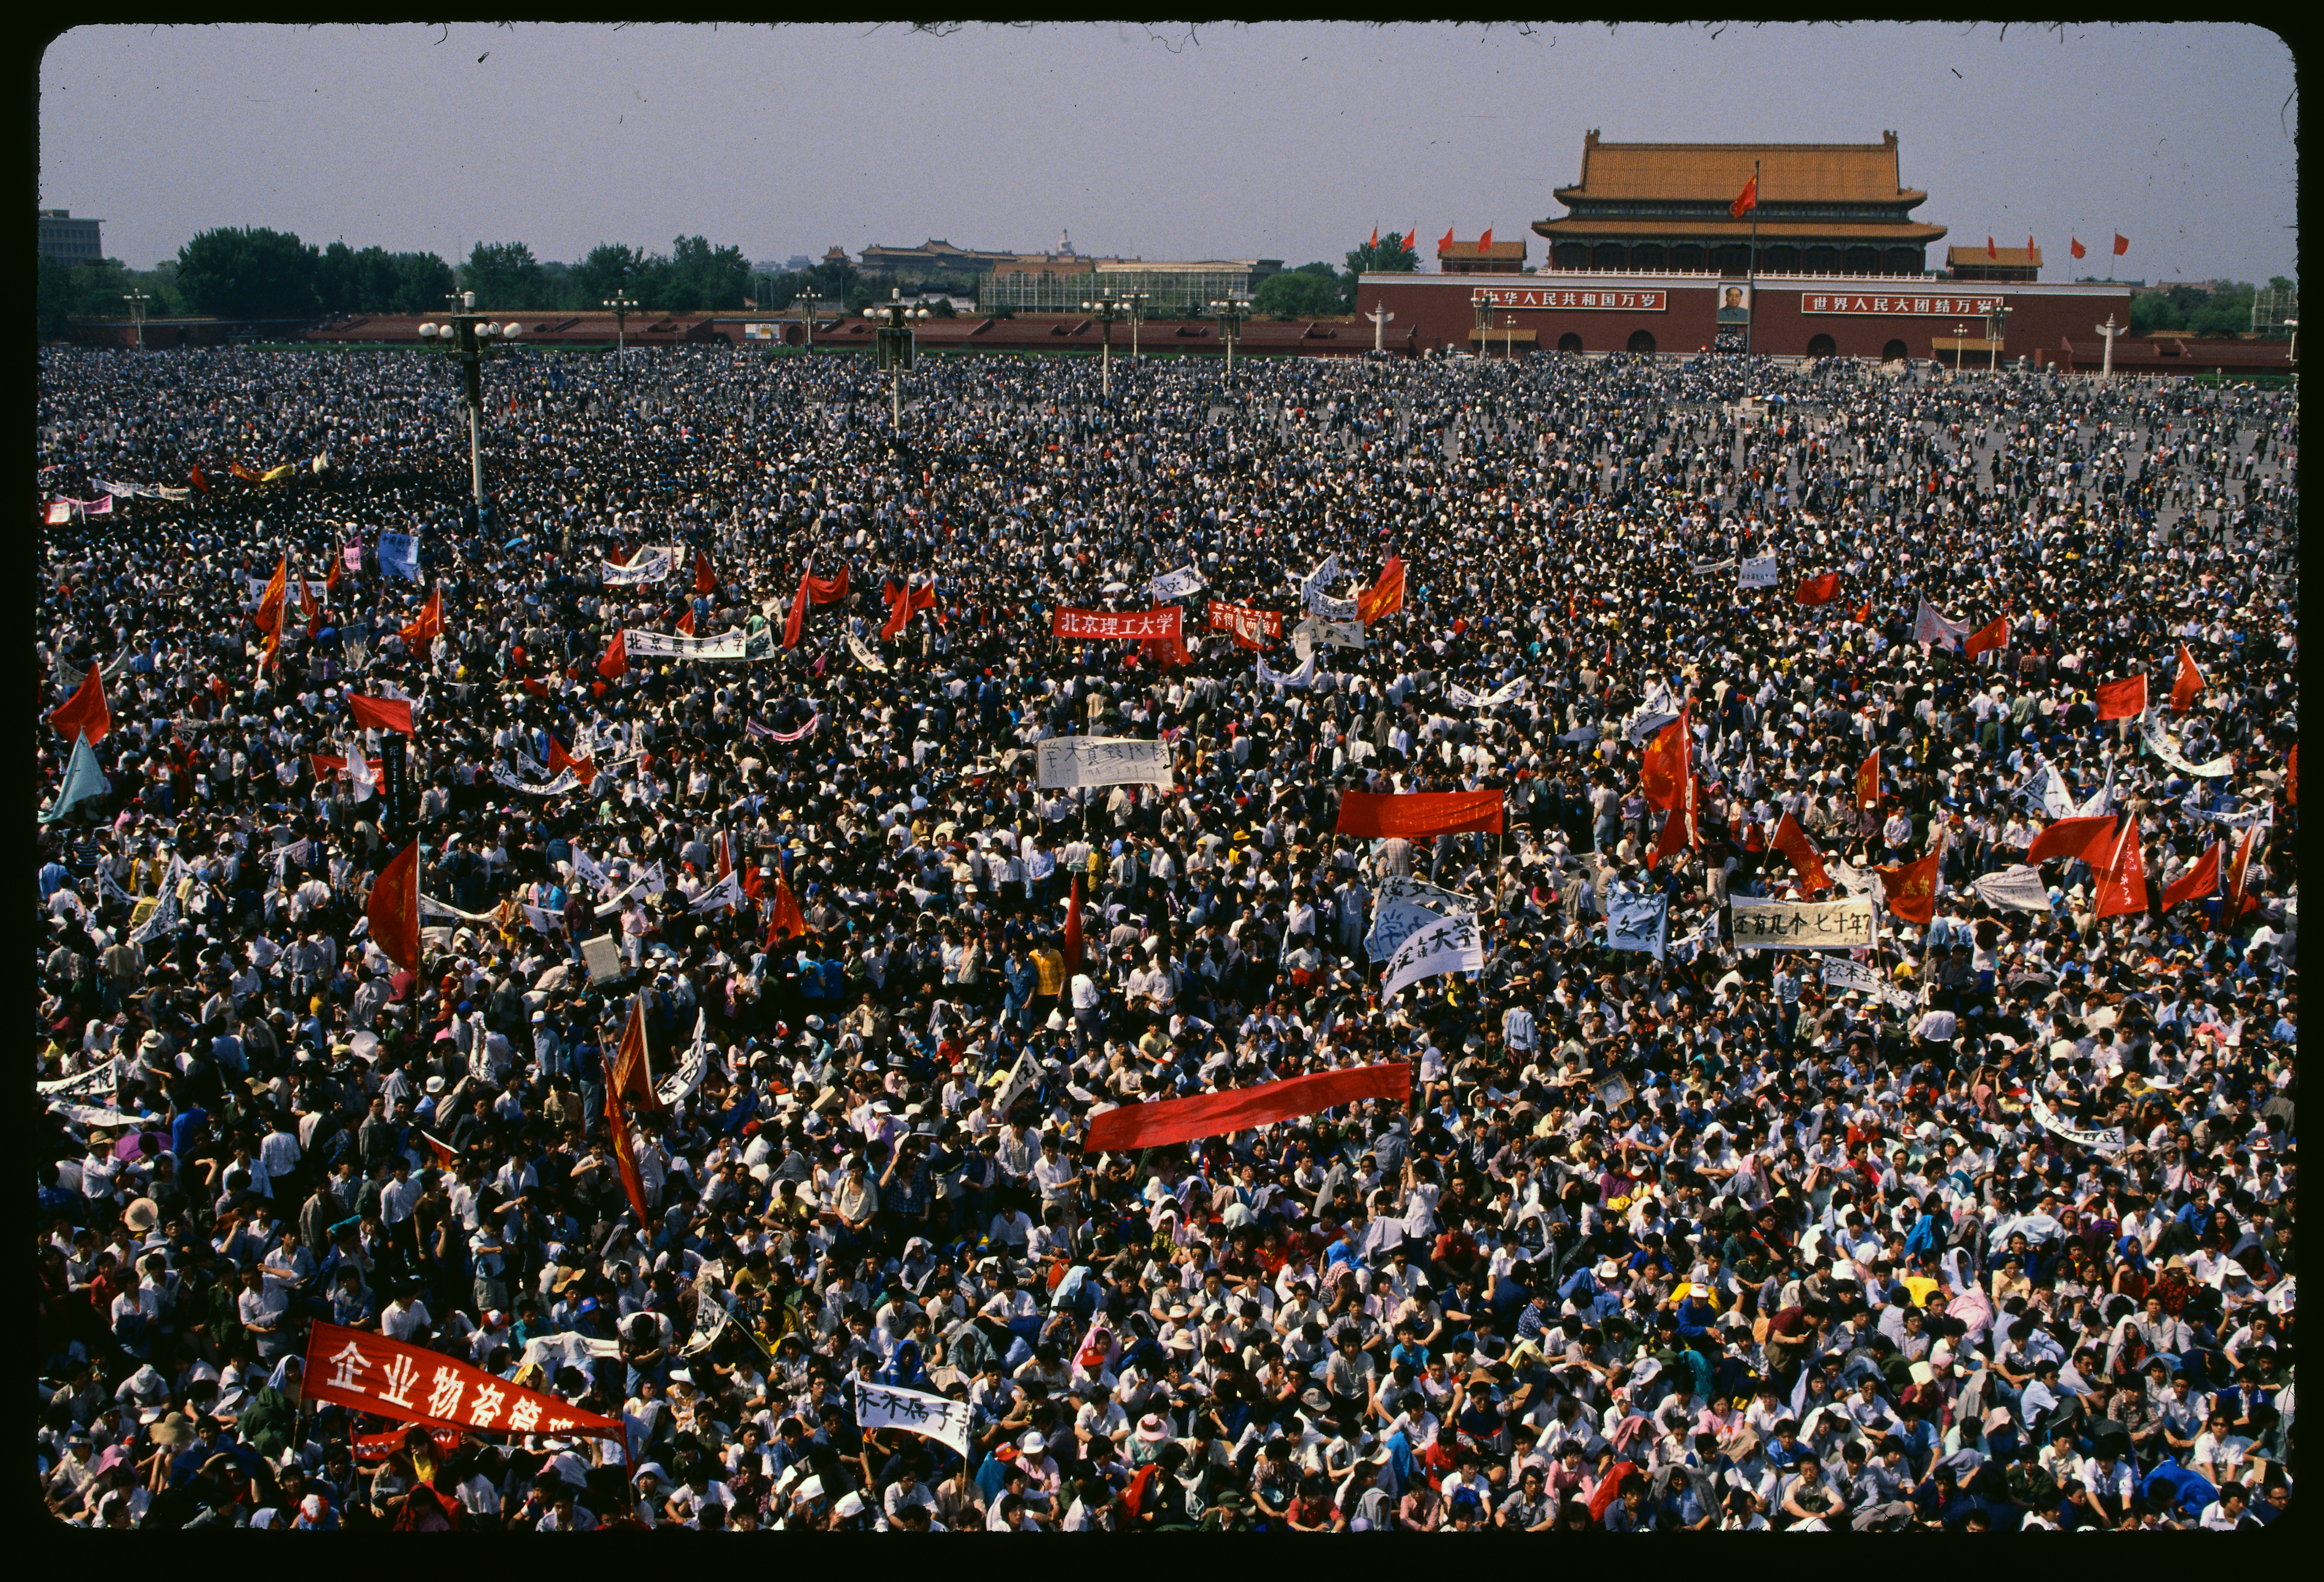 A sea of student protesters gathers in Tiananmen Square on May 4, 1989. They were asking for greater freedom of speech and democracy.